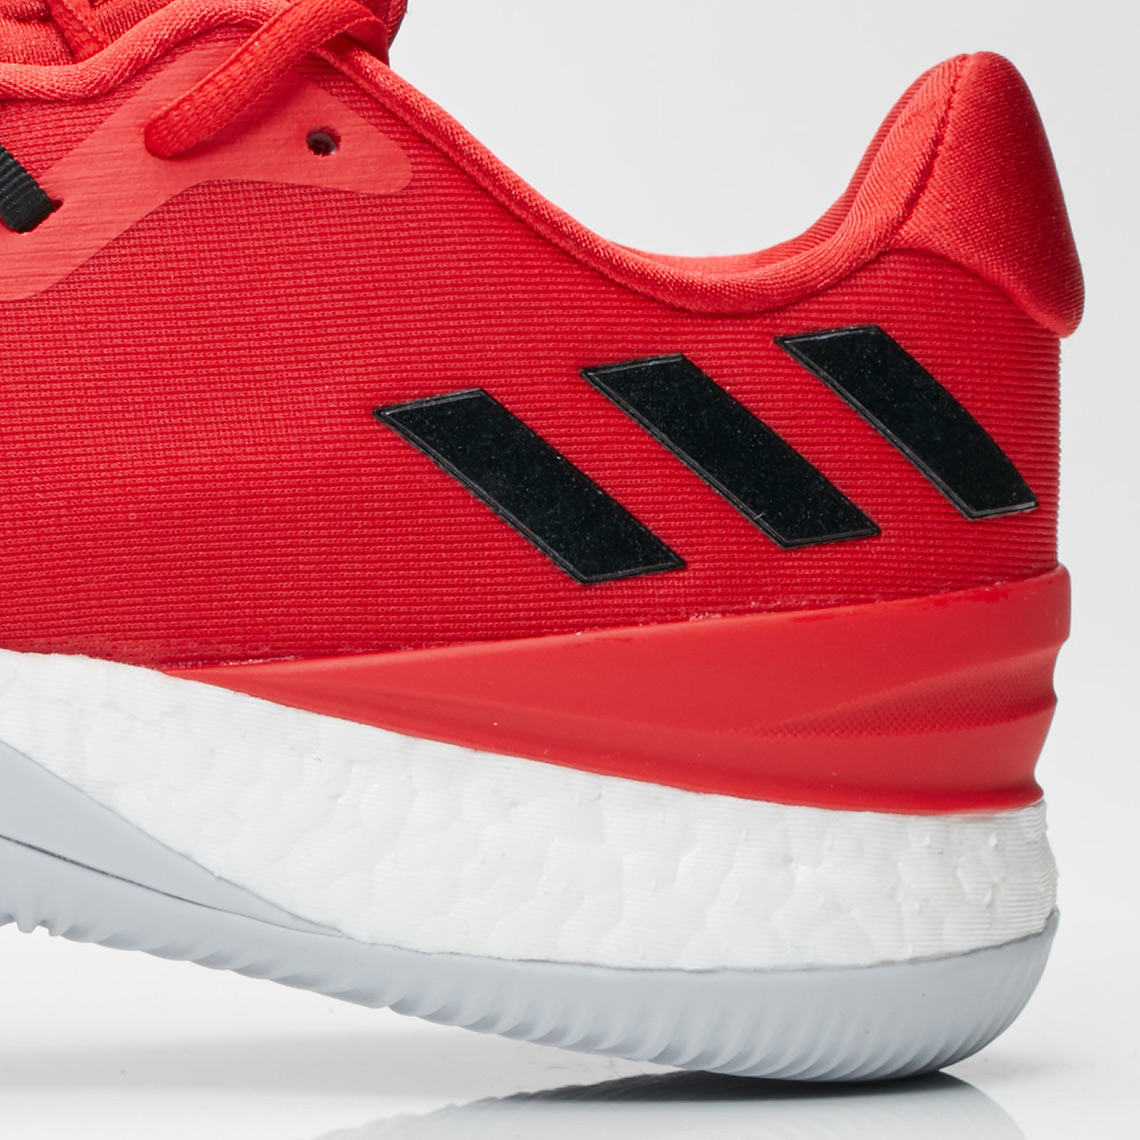 brand new d6278 37093 adidas Crazy Light Boost 2. Release Date September 10, 2018. AVAILABLE AT  SNS 129. Color Collegiate NavyHi-Res GreyLight Solid Grey Style Code  DB1068